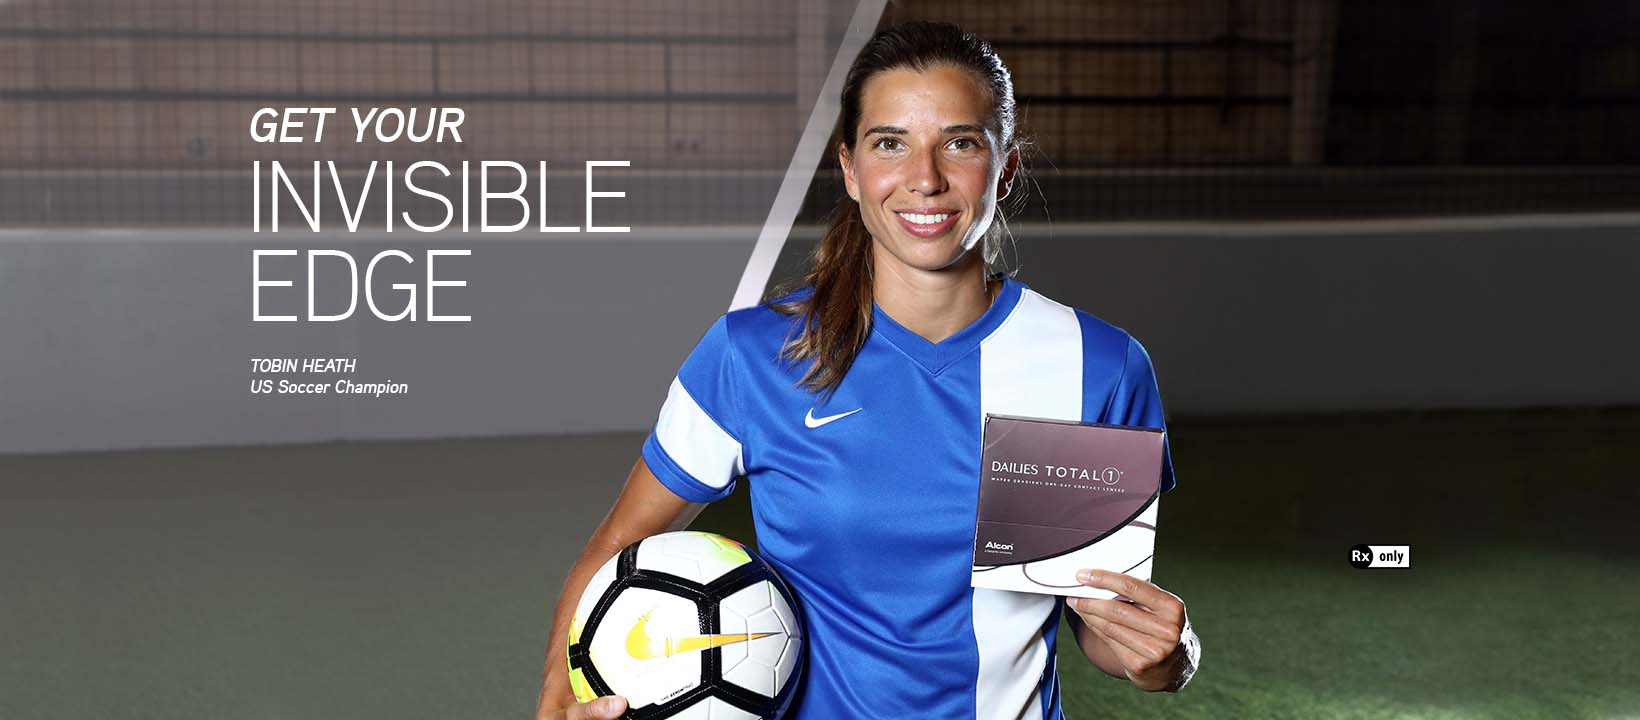 Alcon DAILIES® teams up with US Olympians - world-class gymnast Laurie Hernandez and soccer star Tobin Heath - to launch the Invisible Edge campaign